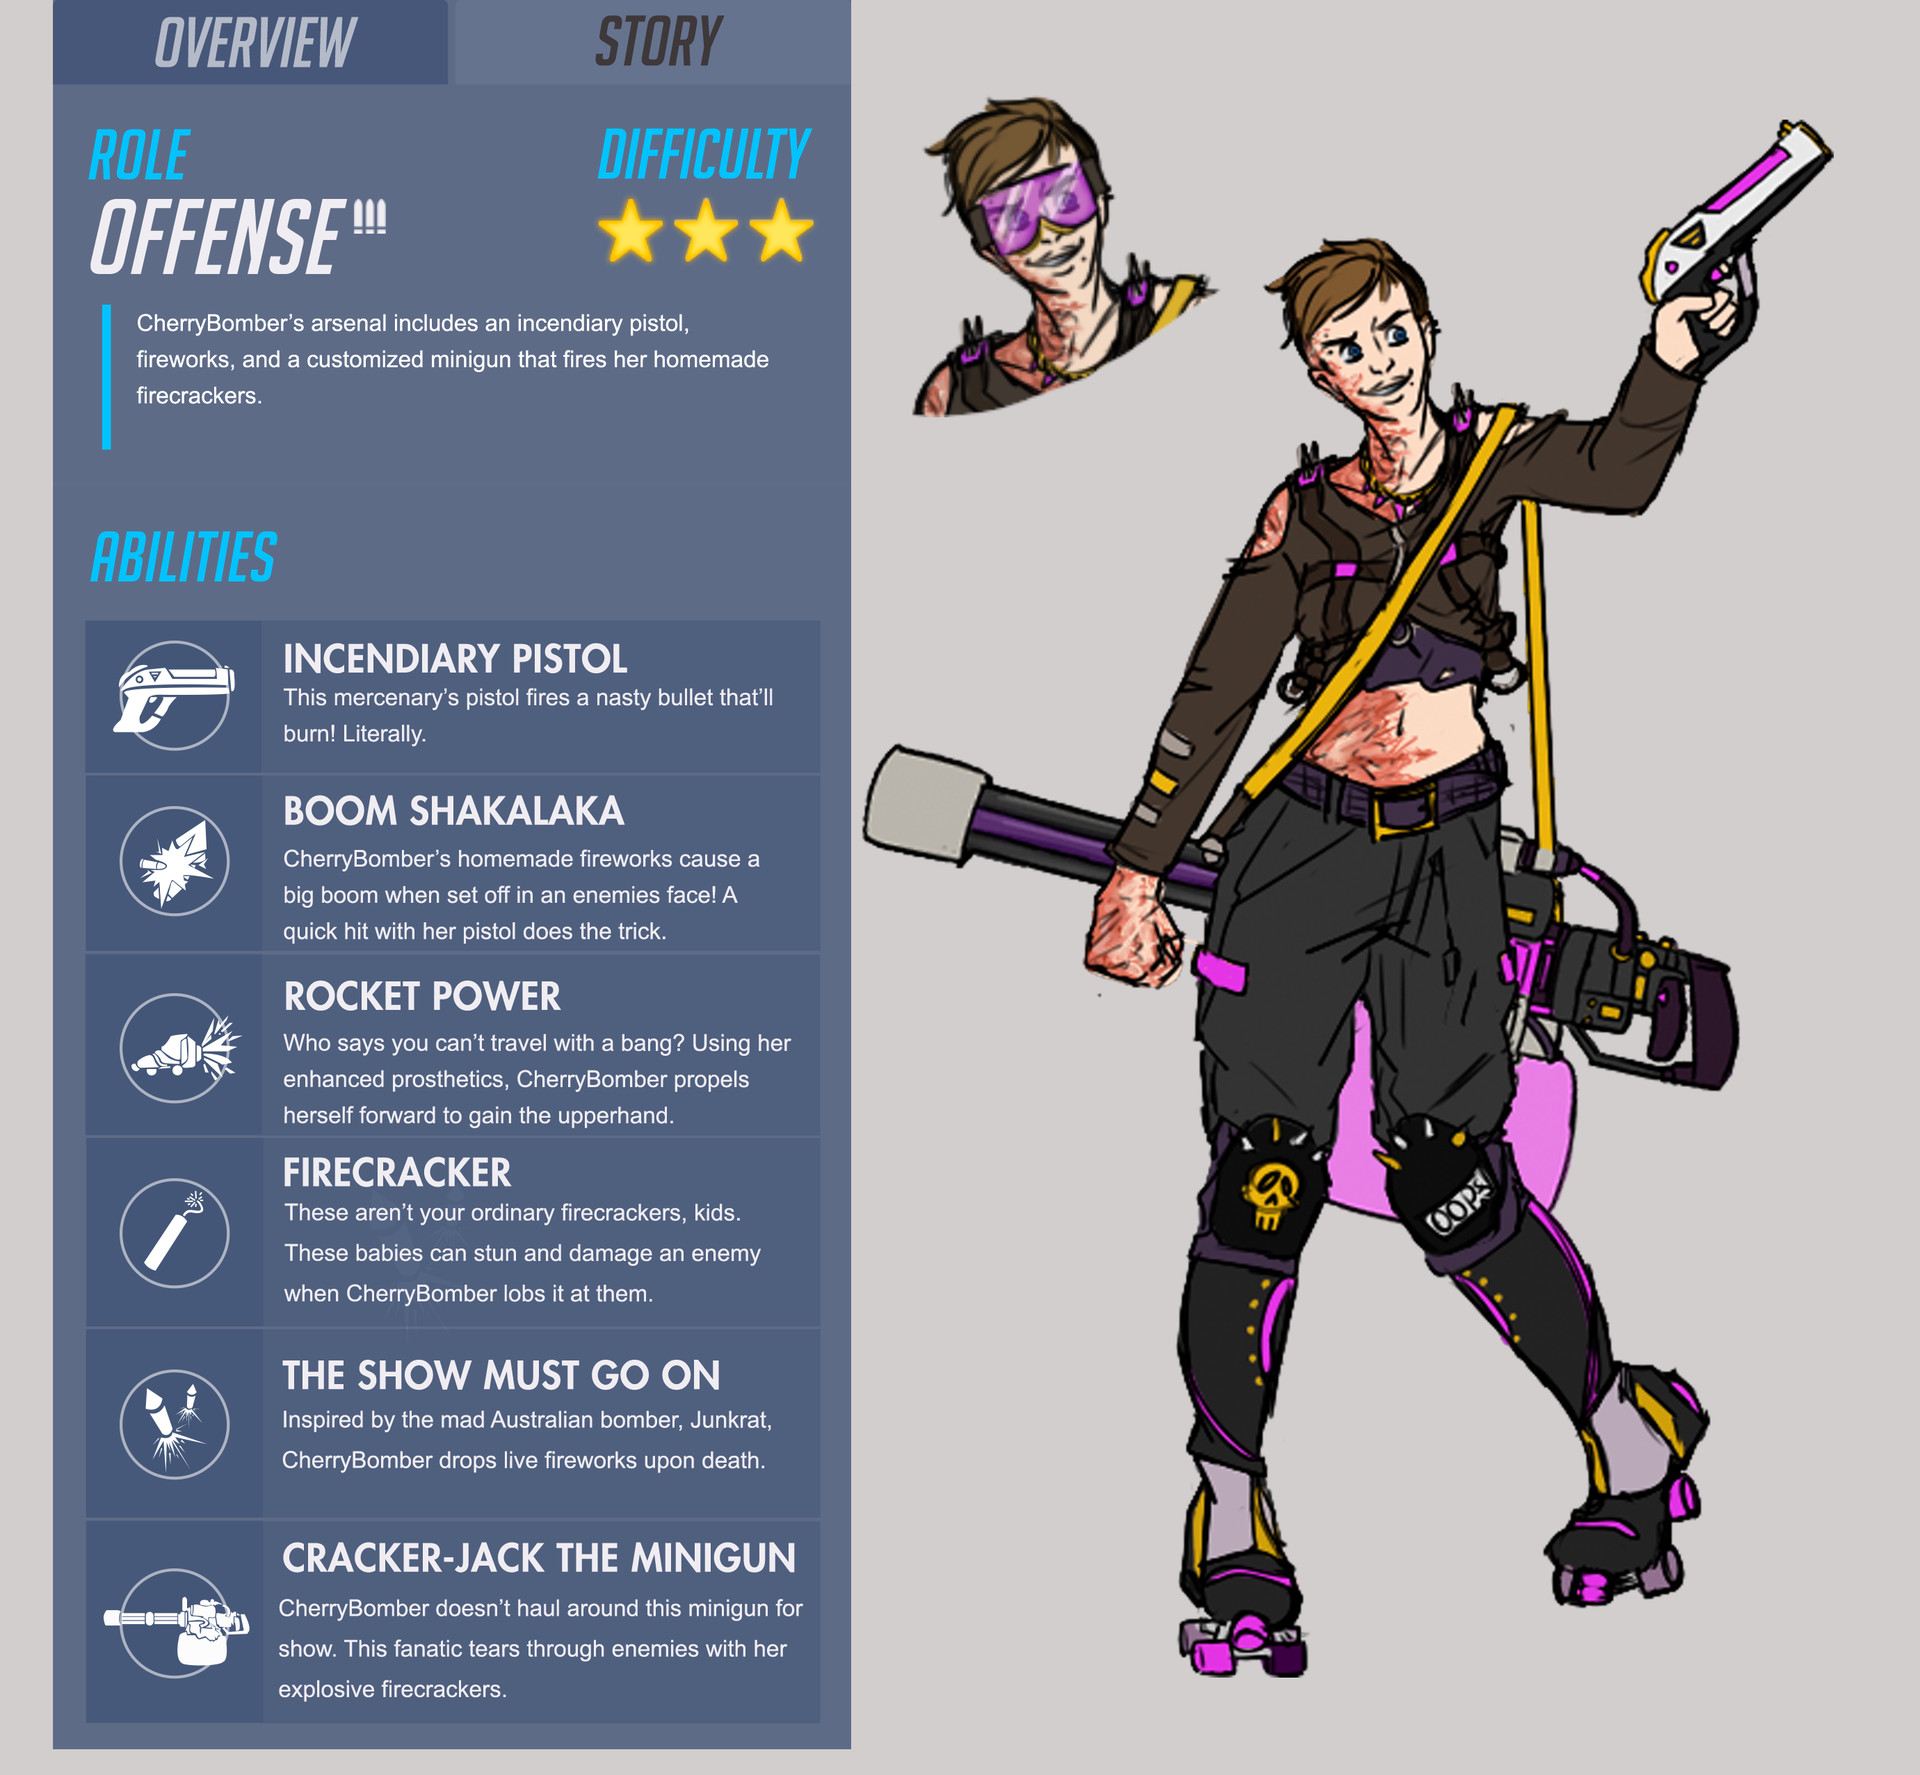 ArtStation - Overwatch Fan Hero CherryBomber, Charity Lauhon